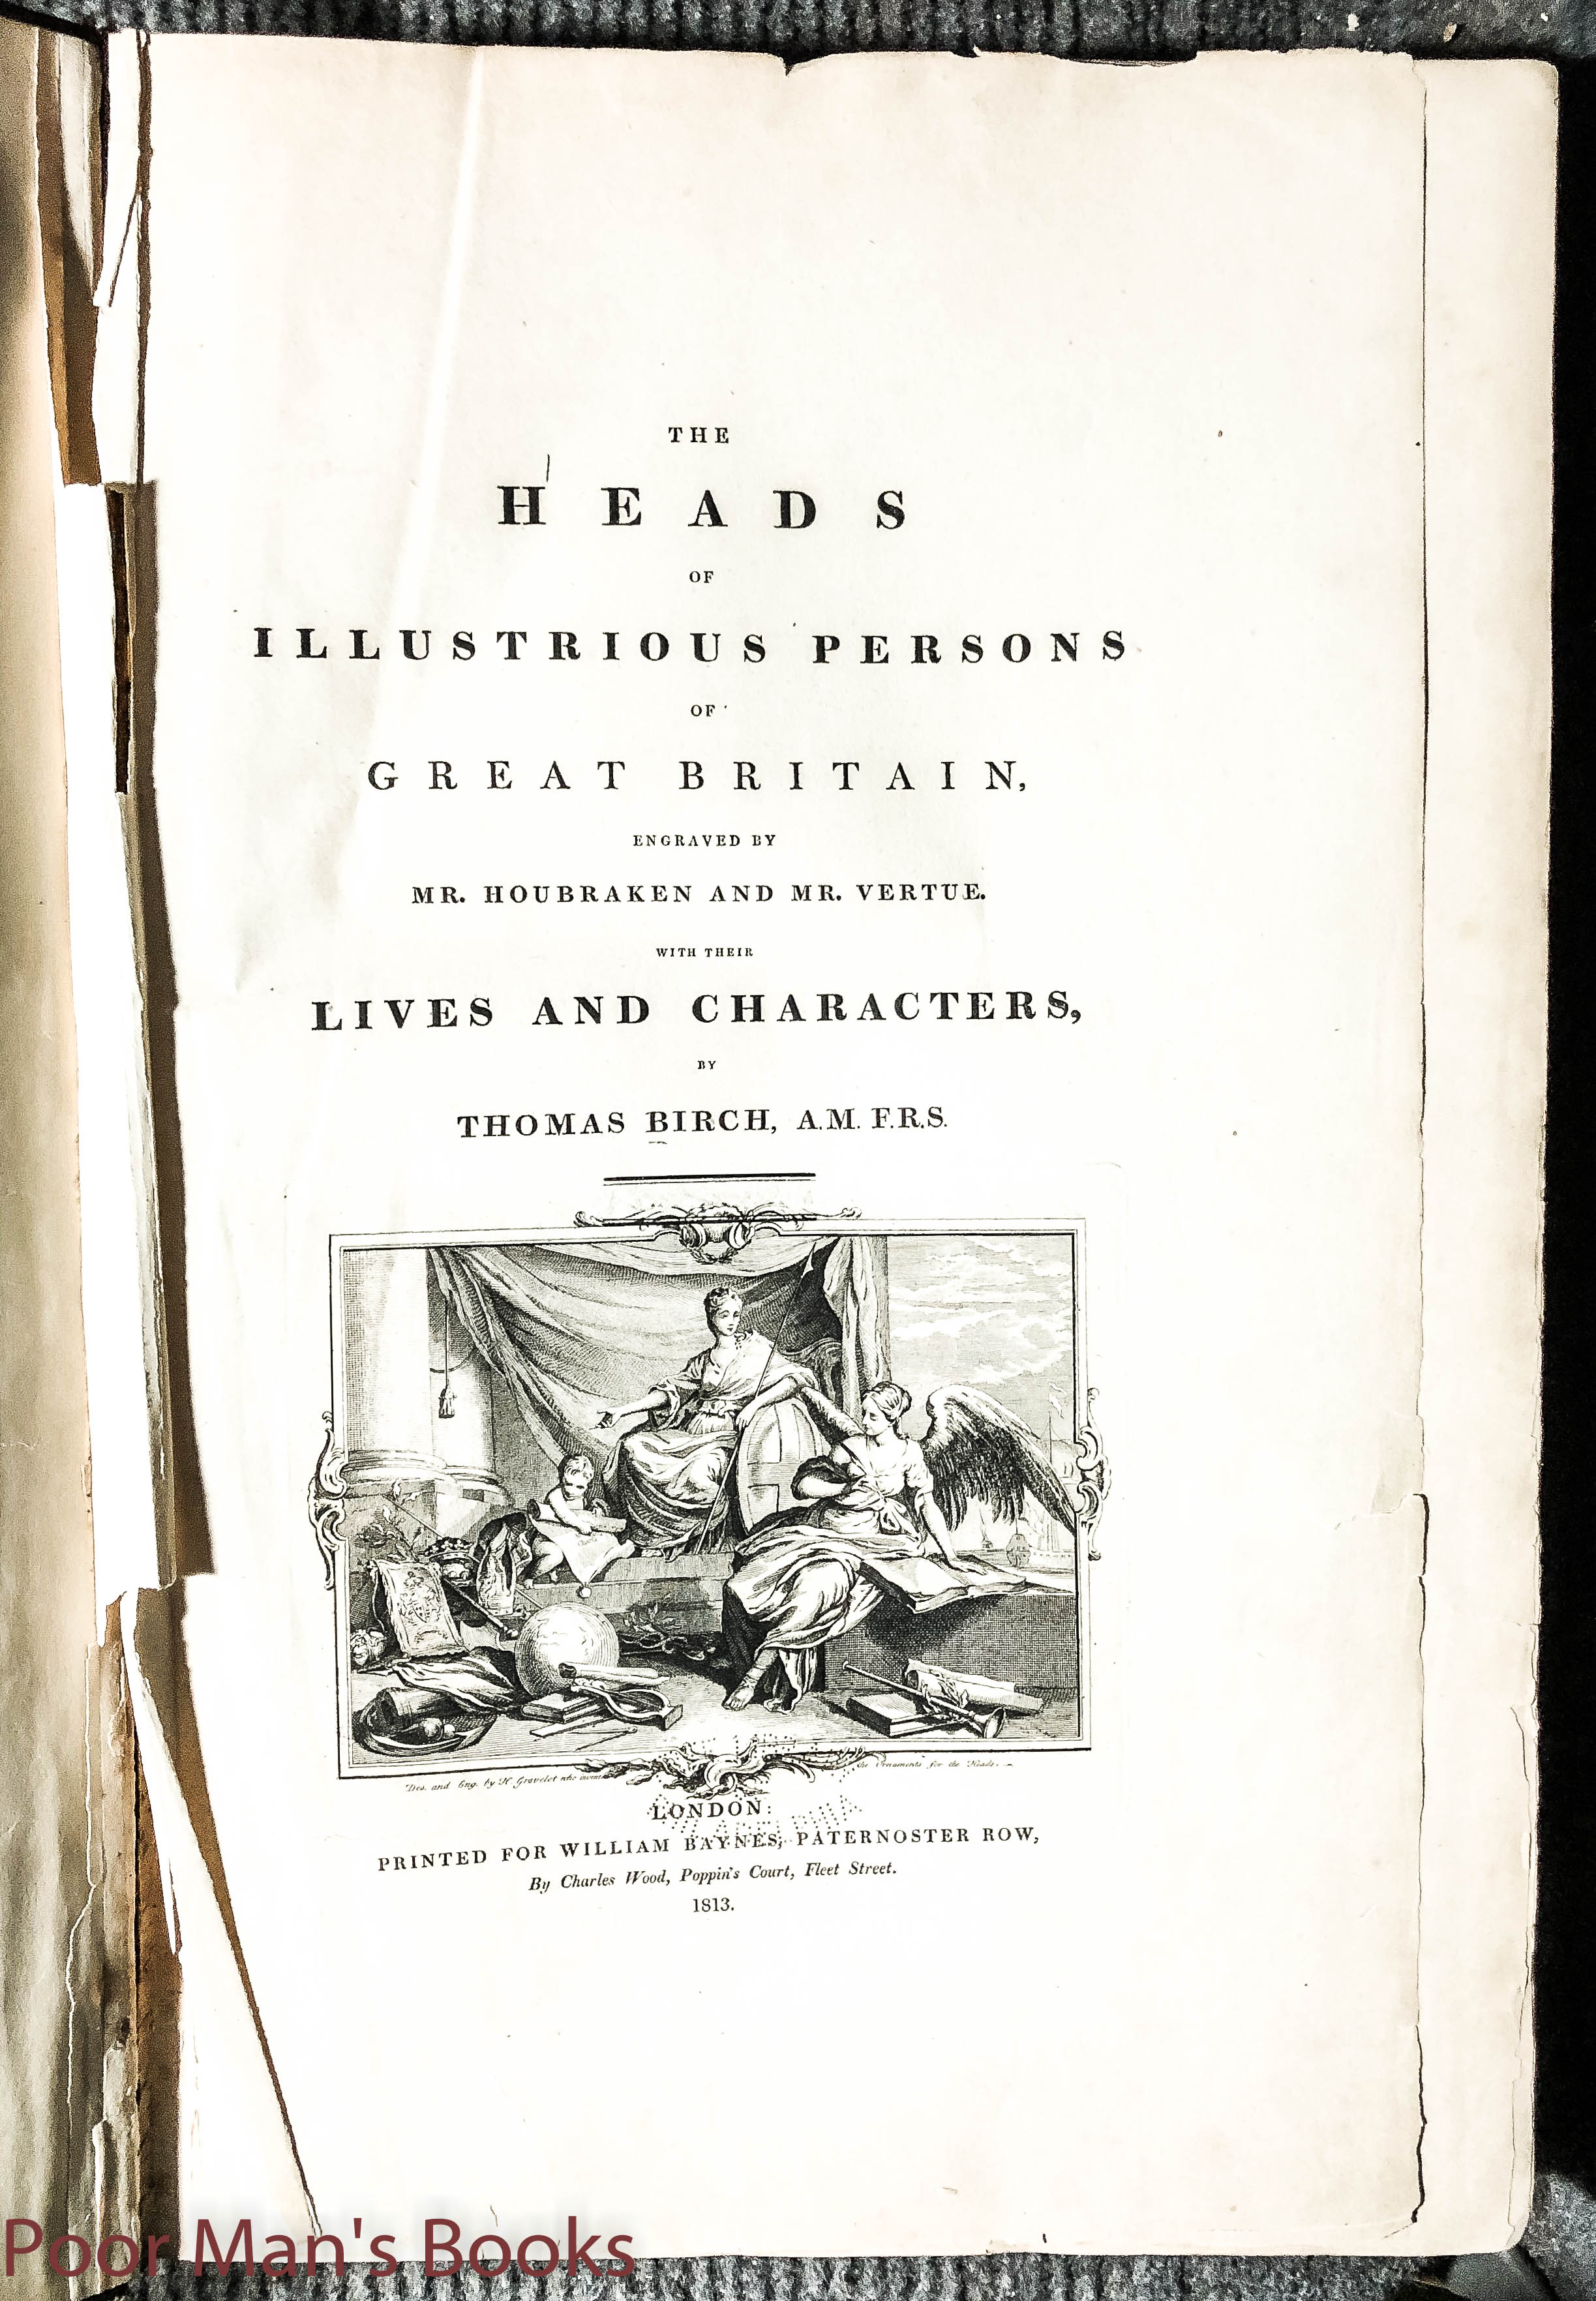 Image for The Heads Of Illustrious Persons Of Great Britain, Engraved By Mr. Houbraken And Mr. Vertue. With Their Lives And Characters By Thomas Birch.